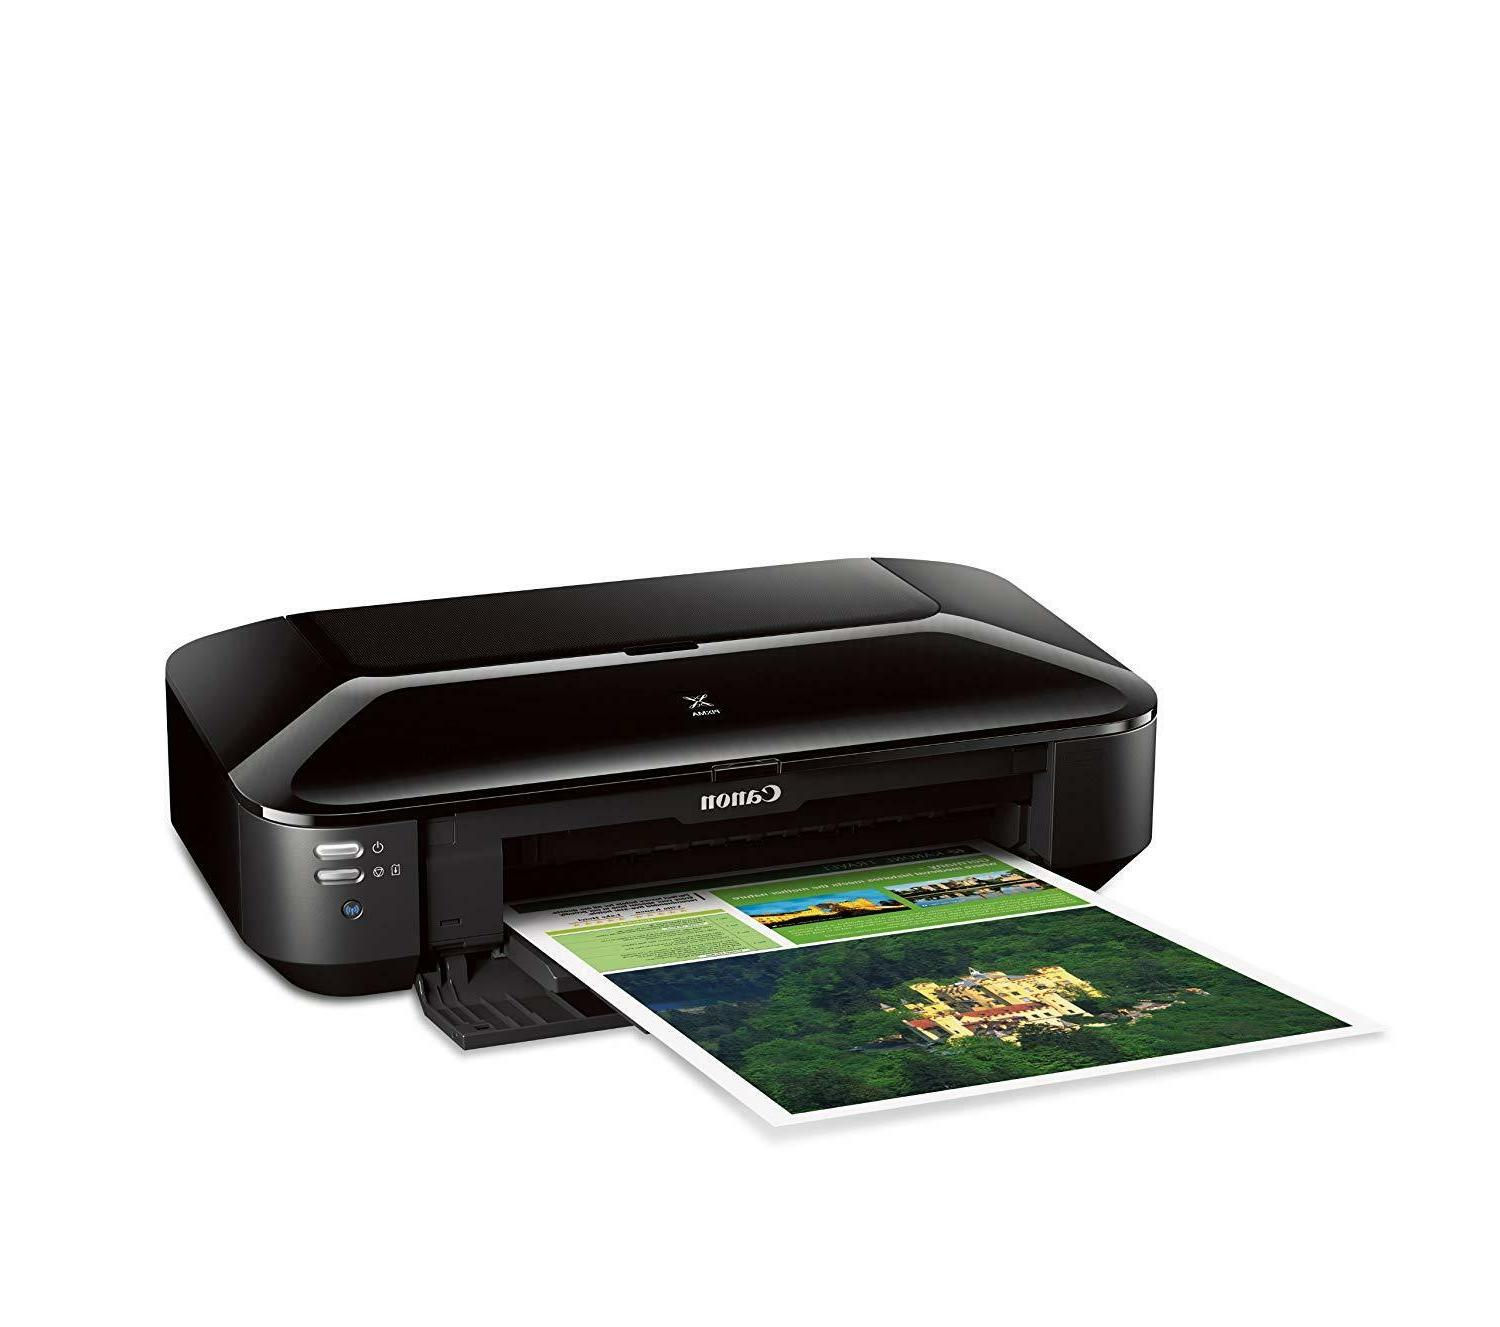 CANON Wireless Business Printer with